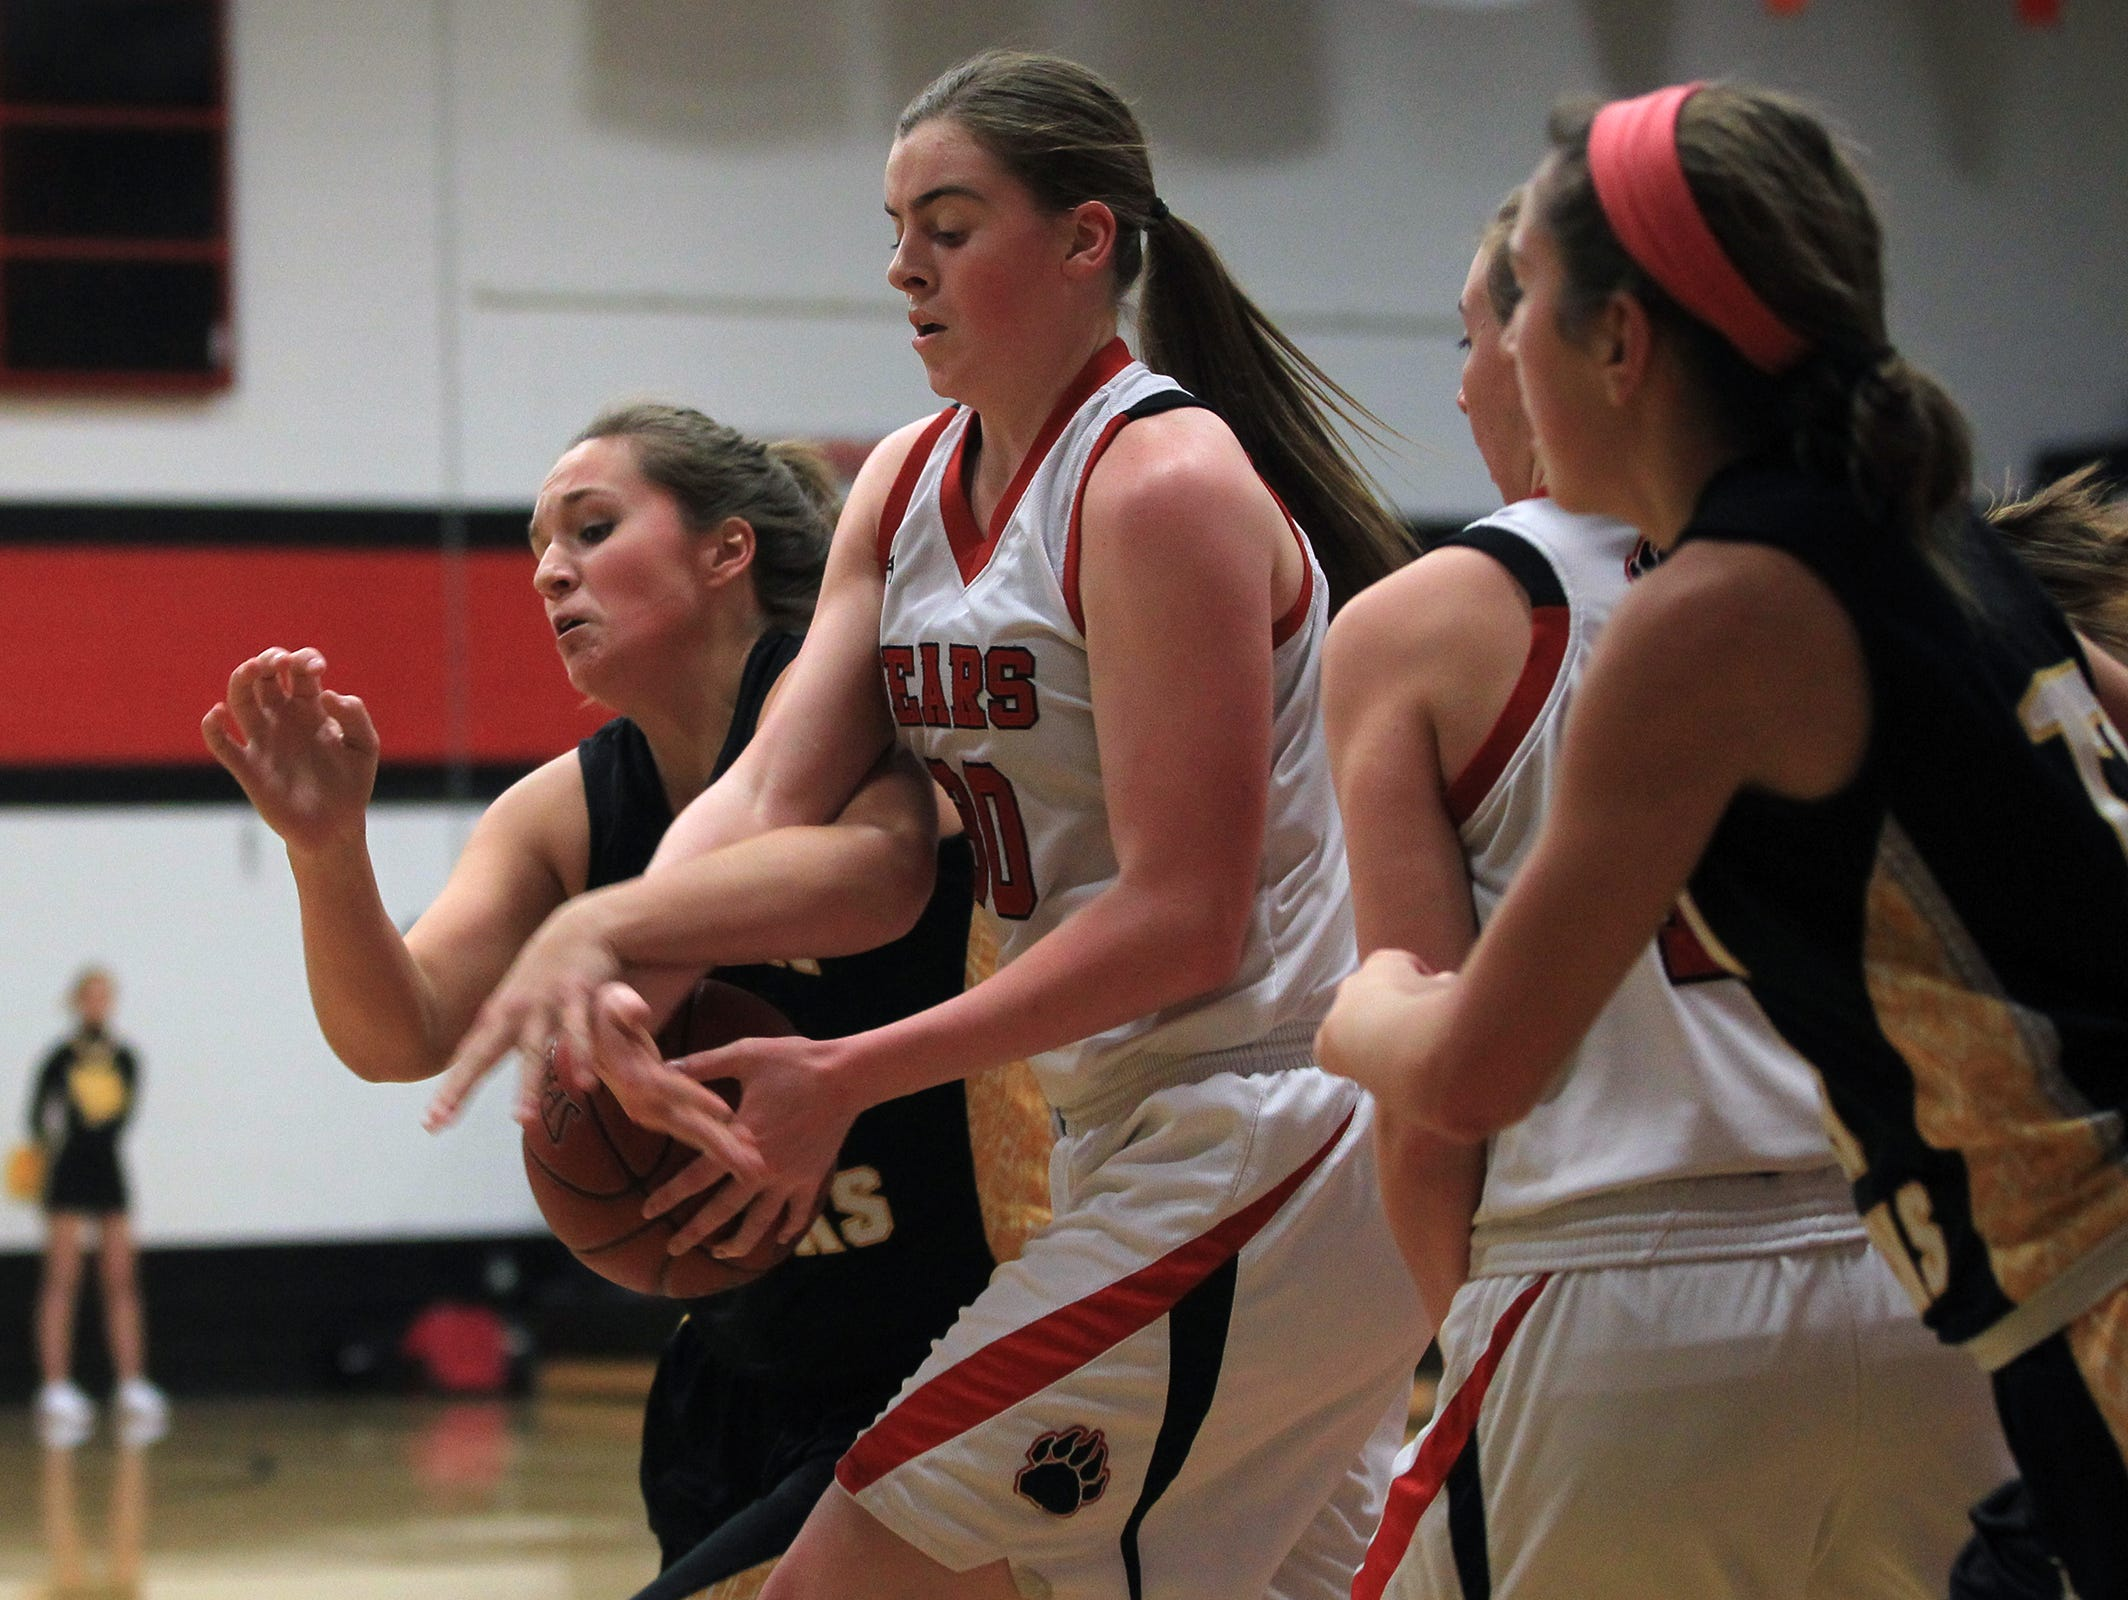 Mid-Prairie's Chelsea Bowlin fights for the ball with West Branch's Haley Poula during their game in West Branch on Tuesday, Dec. 9, 2014.